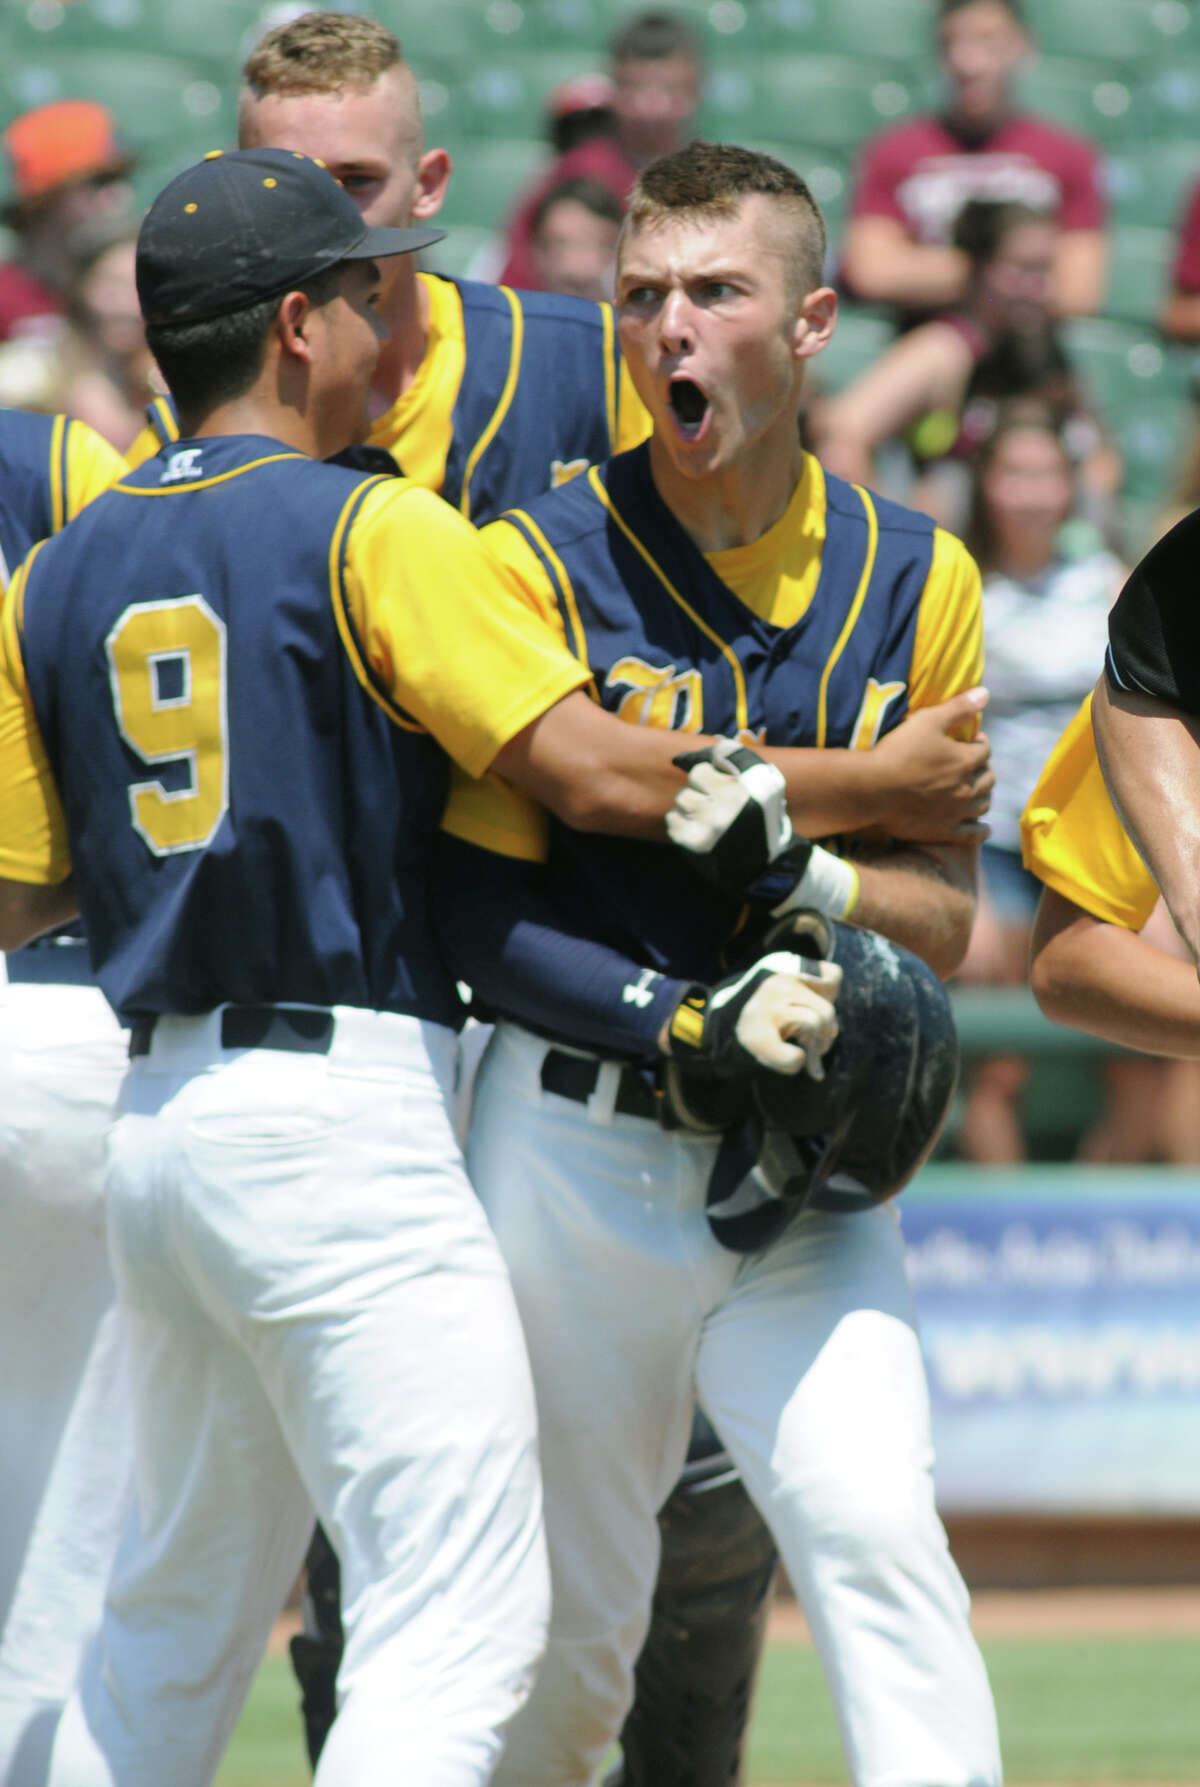 Cy-Ranch sophomore centerfielder Corbin Martin, right, is greeted by teammate Hernan Herrera (#9) after his homerun in the top of the second inning during the 2012 UIL Class 5A State Baseball Championship game versus A&M Consolidated at Dell Diamond in Round Rock on Saturday.